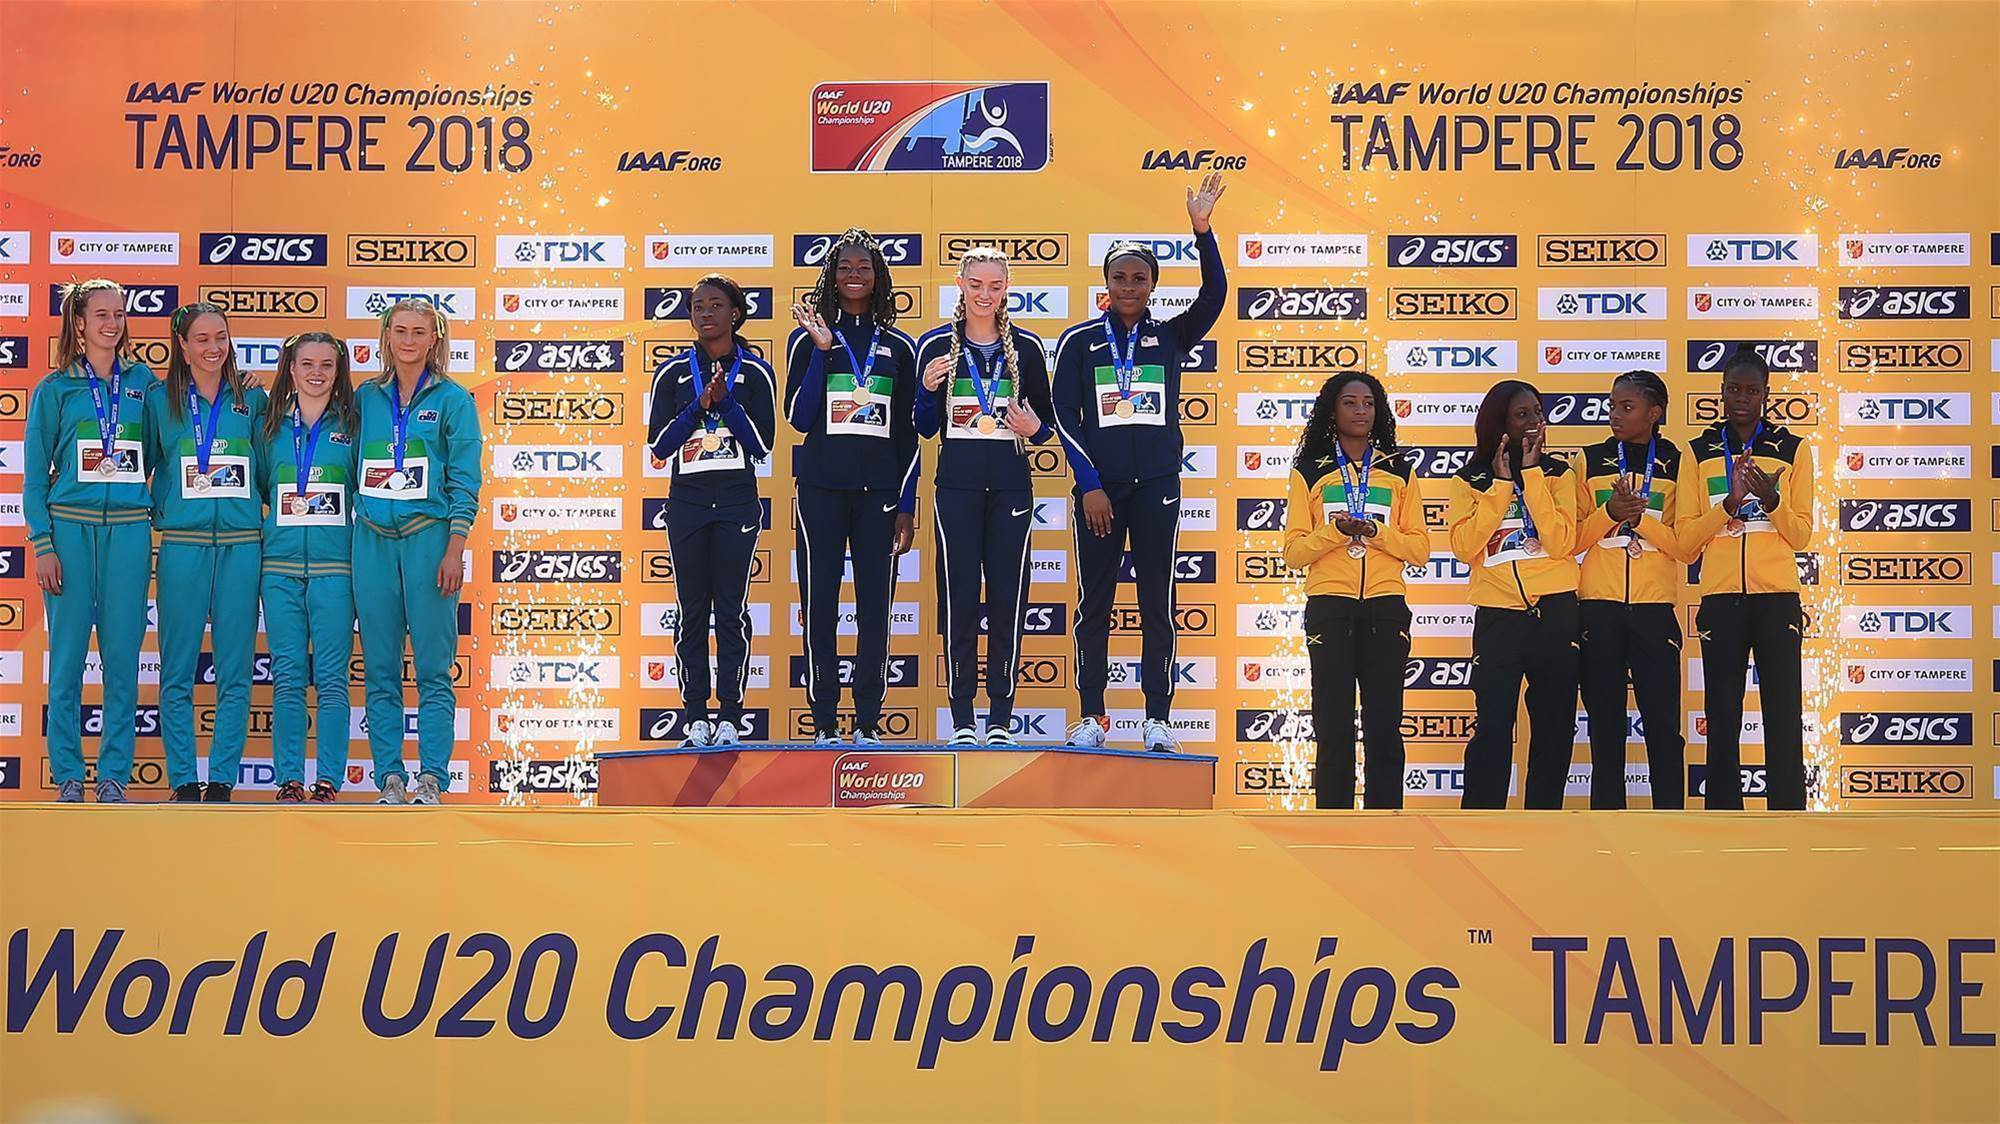 Silver for 4x400 relay team at World U20 Champs